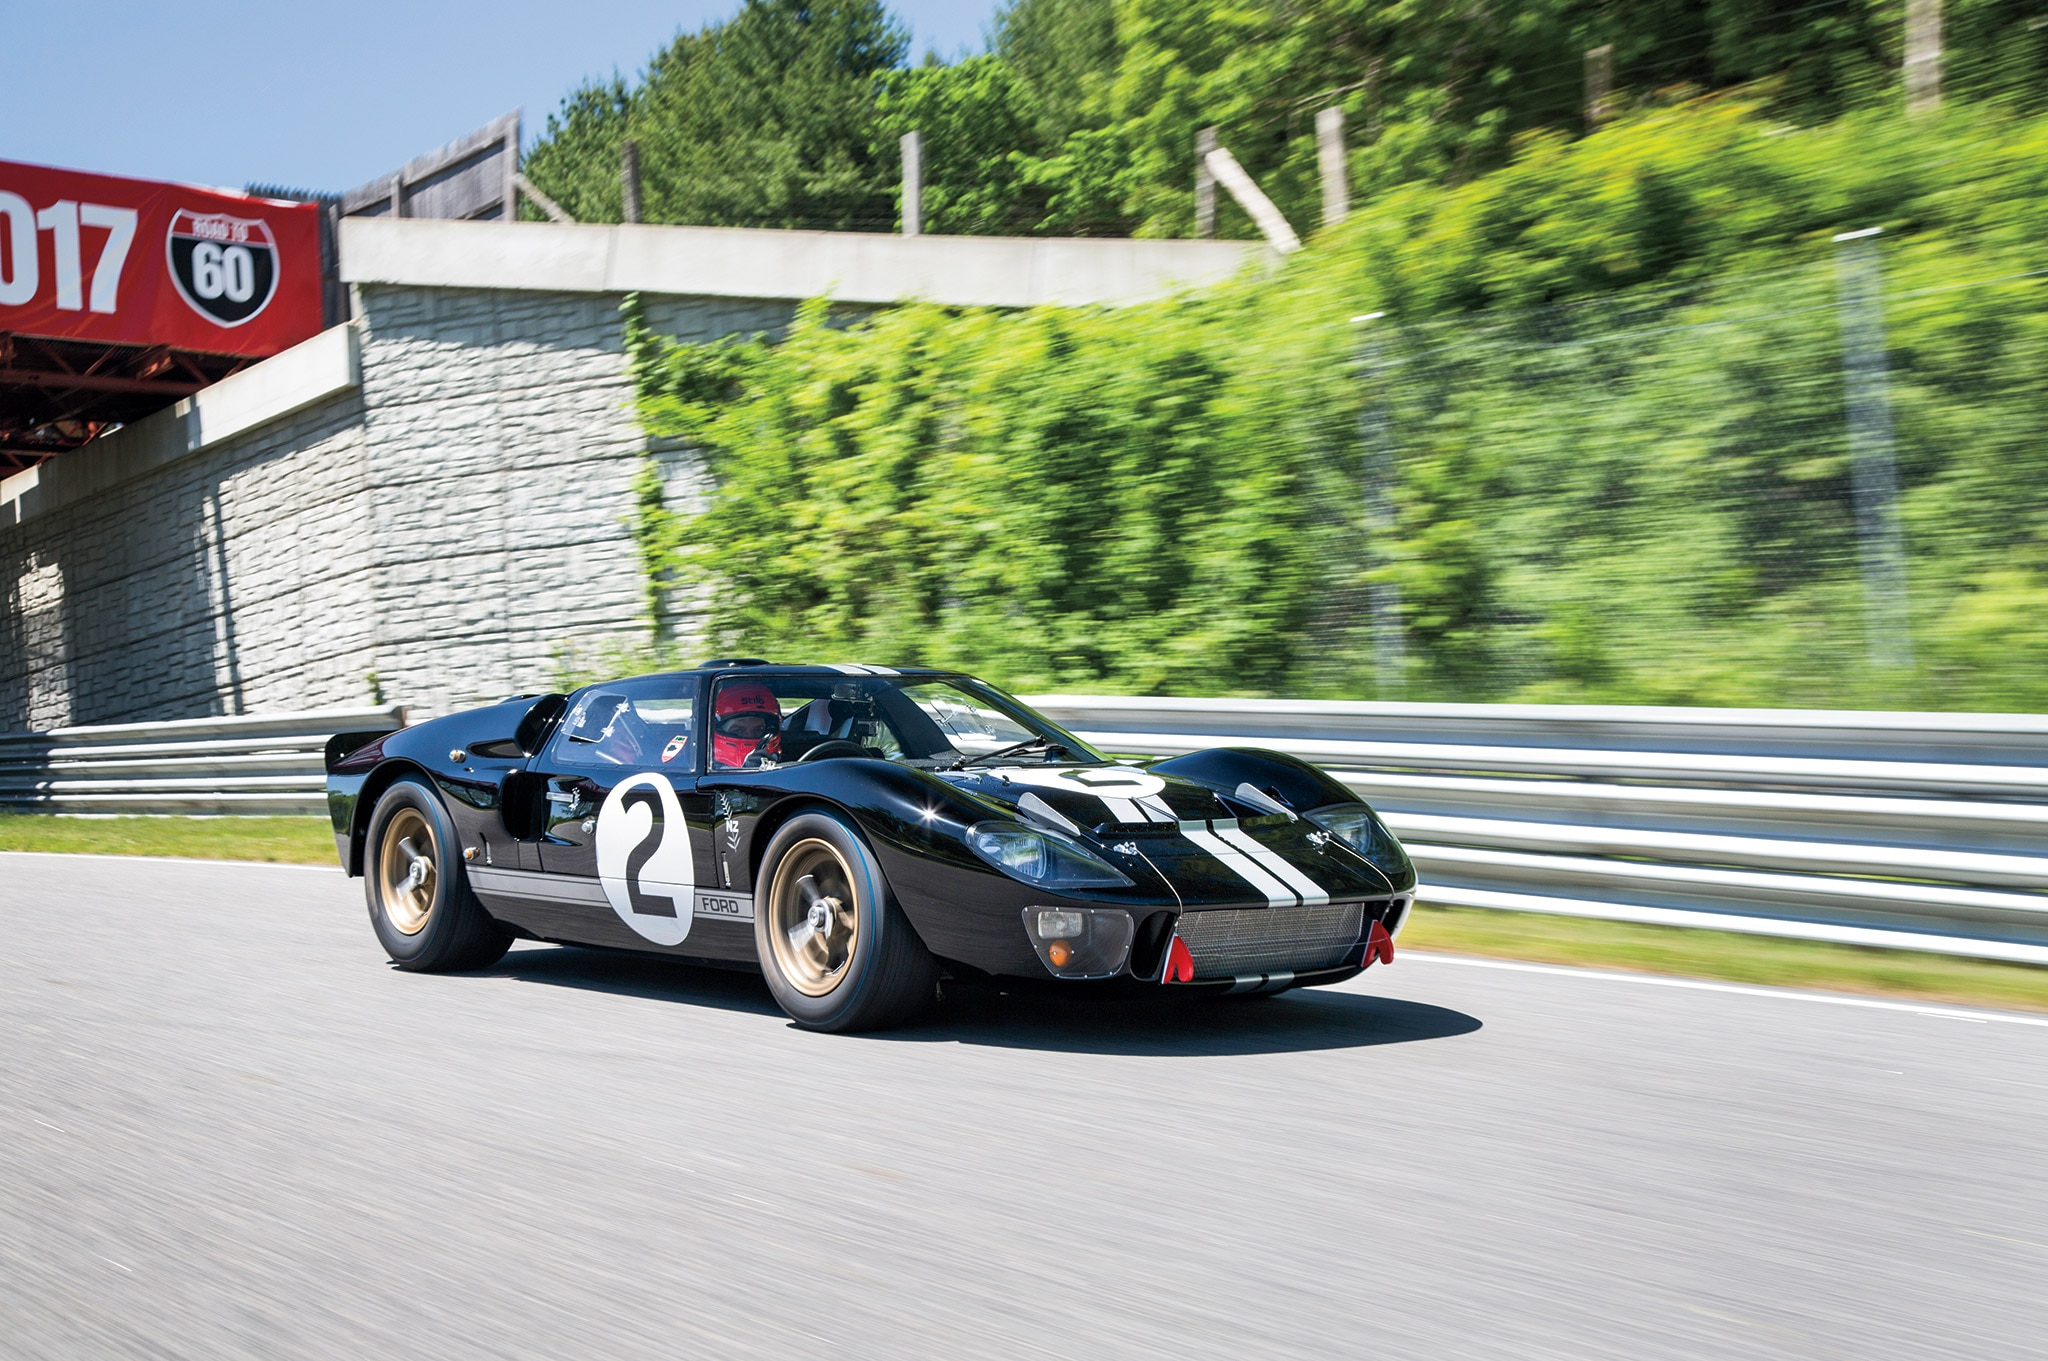 The First Ford Gt To Win Le Mans Gets A Proper Makeover